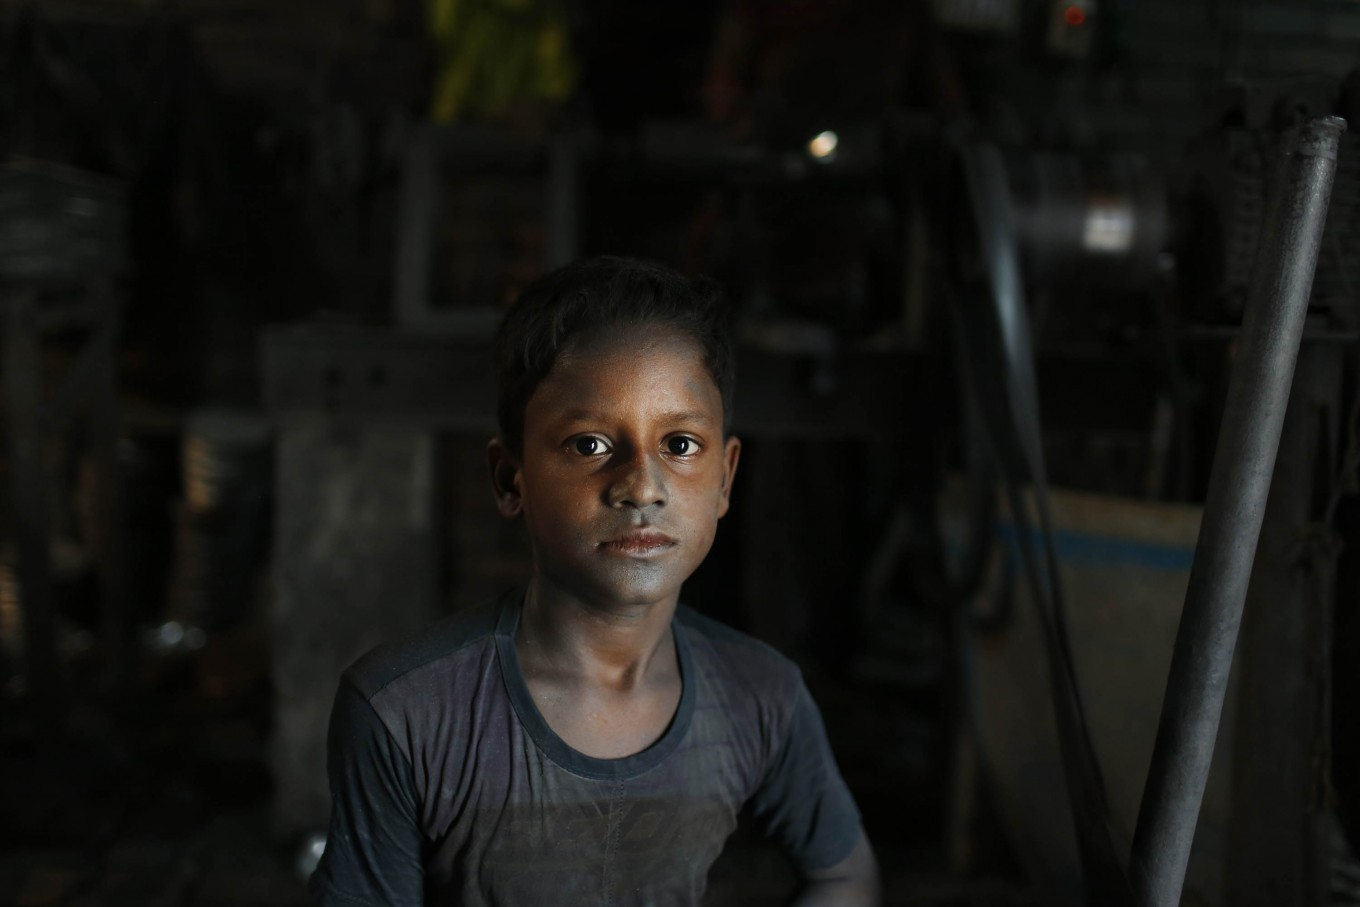 In this Sunday, June 12, 2016, photo, Bangladeshi child Arif, 9, looks towards camera as he works at a factory that makes metal utensils in Dhaka, Bangladesh. AP Photo/ A.M. Ahad